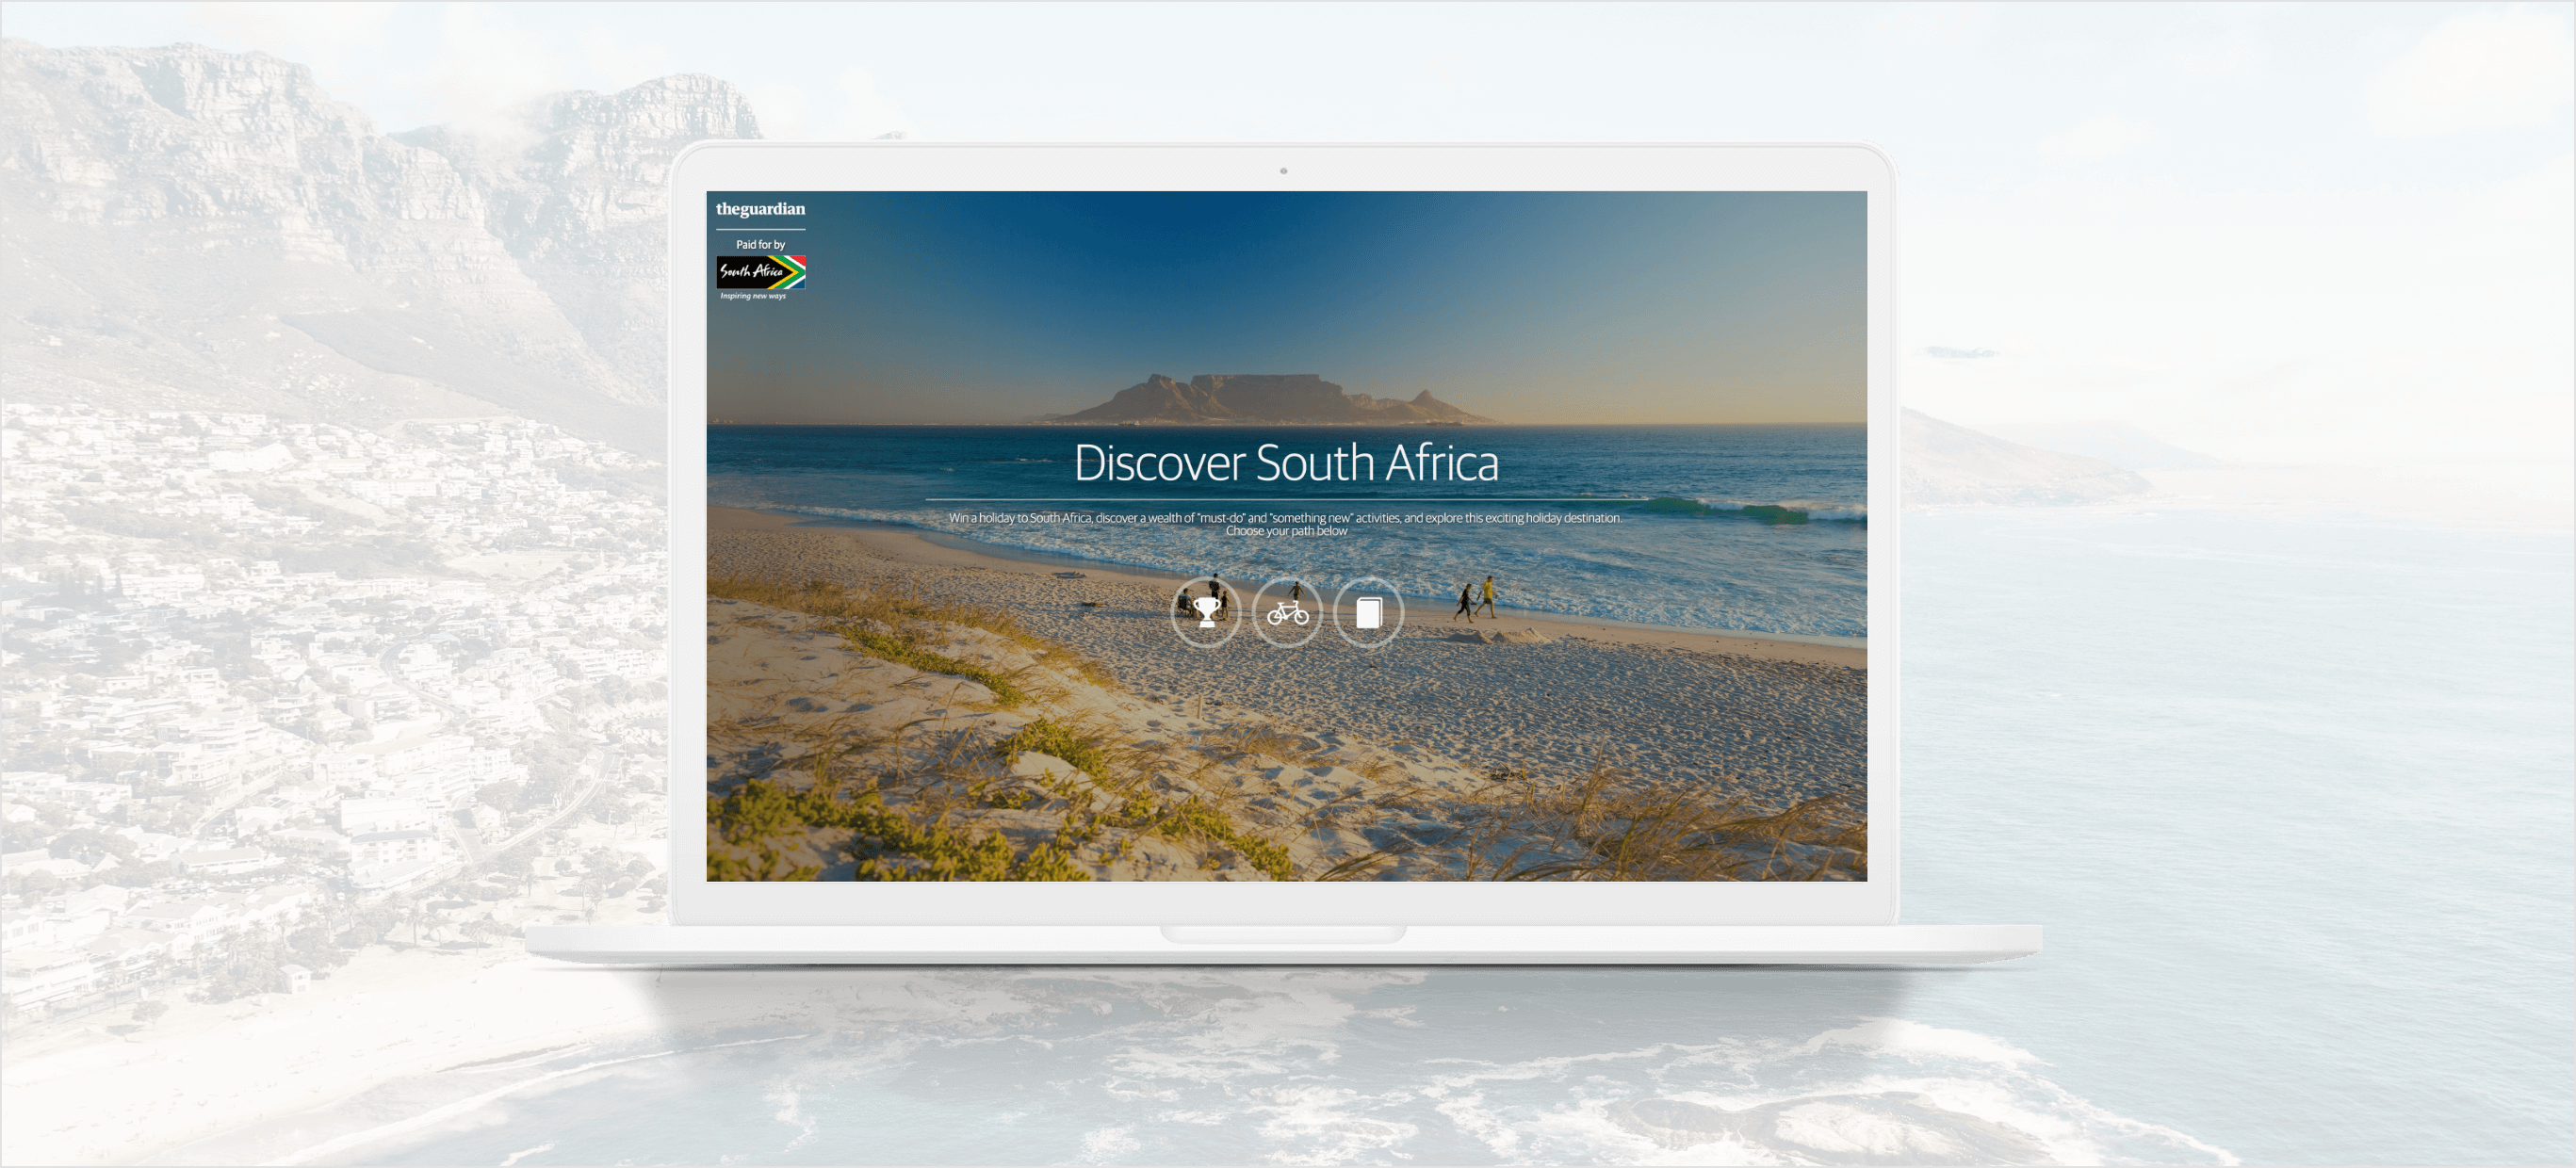 Discover South Africa – The Guardian - hero image